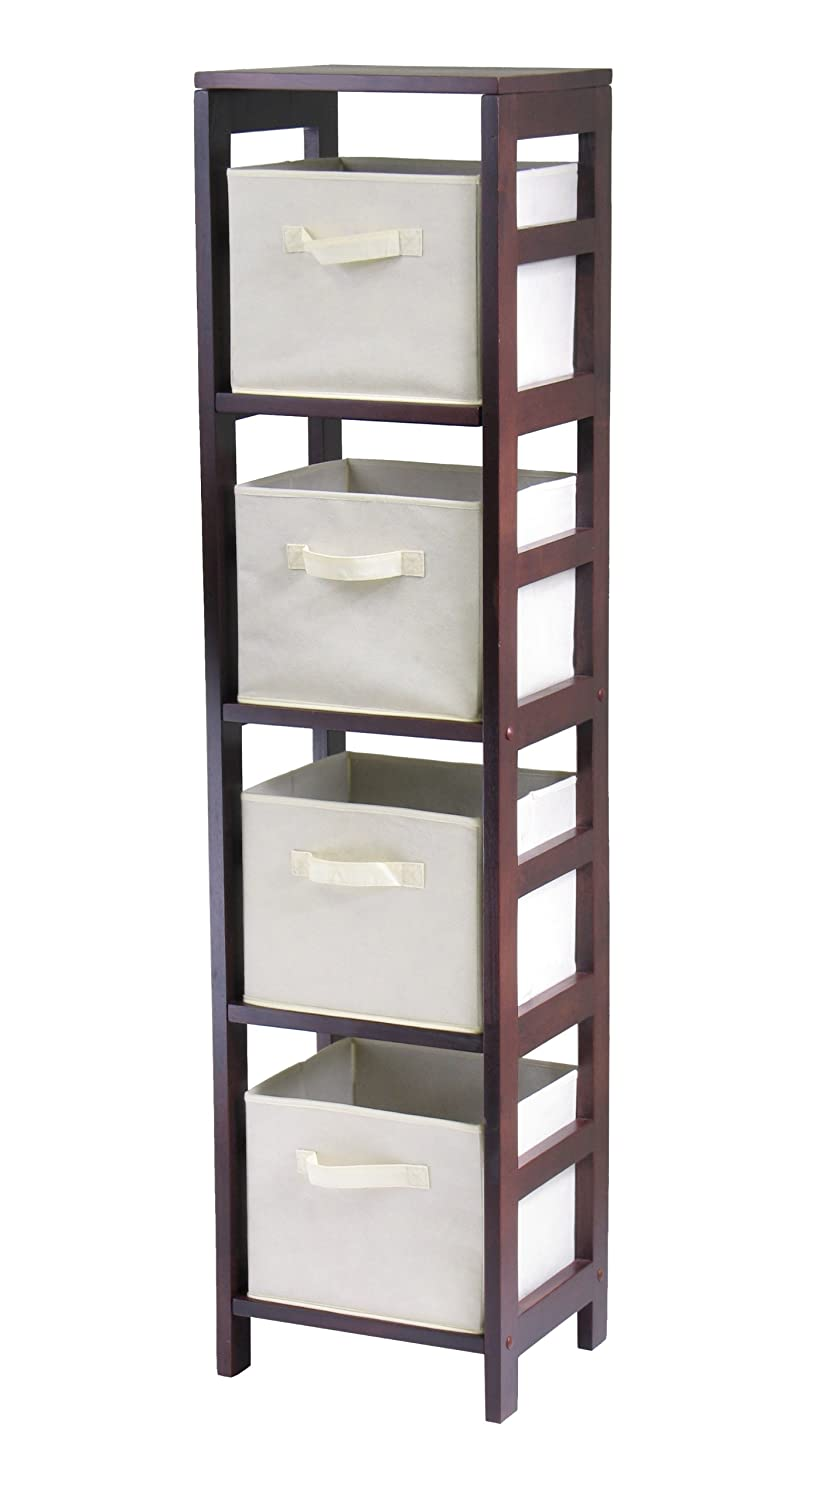 Amazon.com Winsome Wood Leo Wood 4 Tier Storage Shelf with 4 Small Rattan Baskets Kitchen u0026 Dining  sc 1 st  Amazon.com & Amazon.com: Winsome Wood Leo Wood 4 Tier Storage Shelf with 4 Small ...